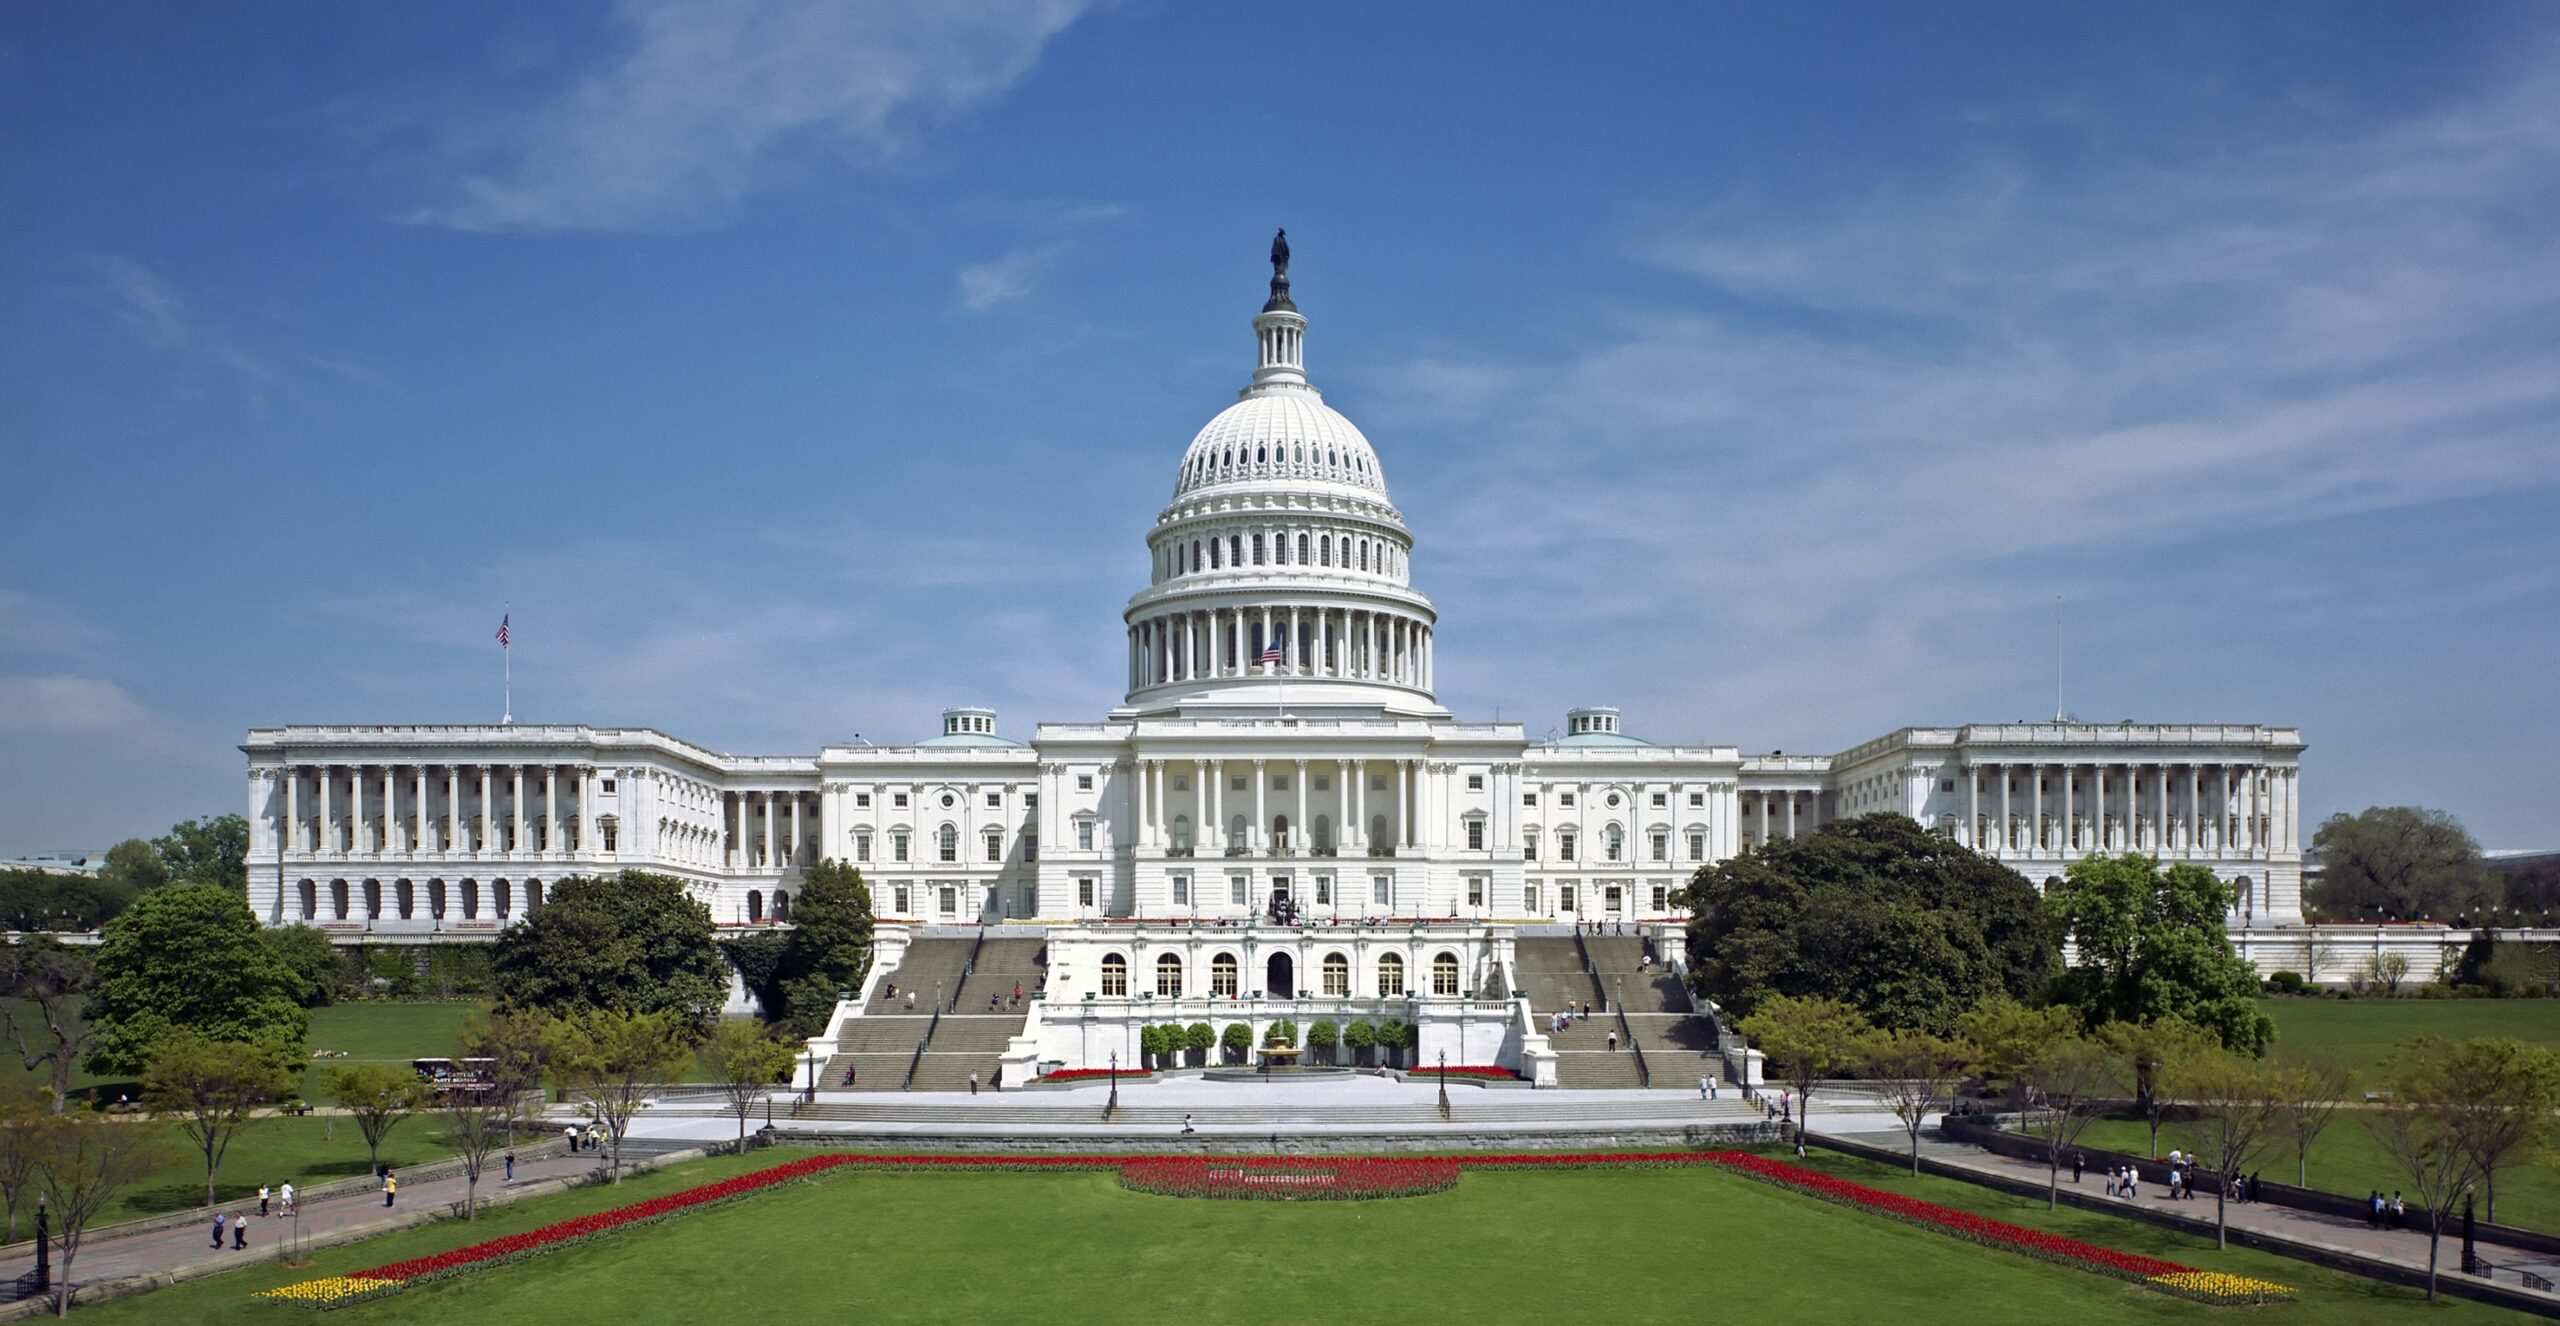 Congress approves a COVID relief bill of $900B sent to Trump